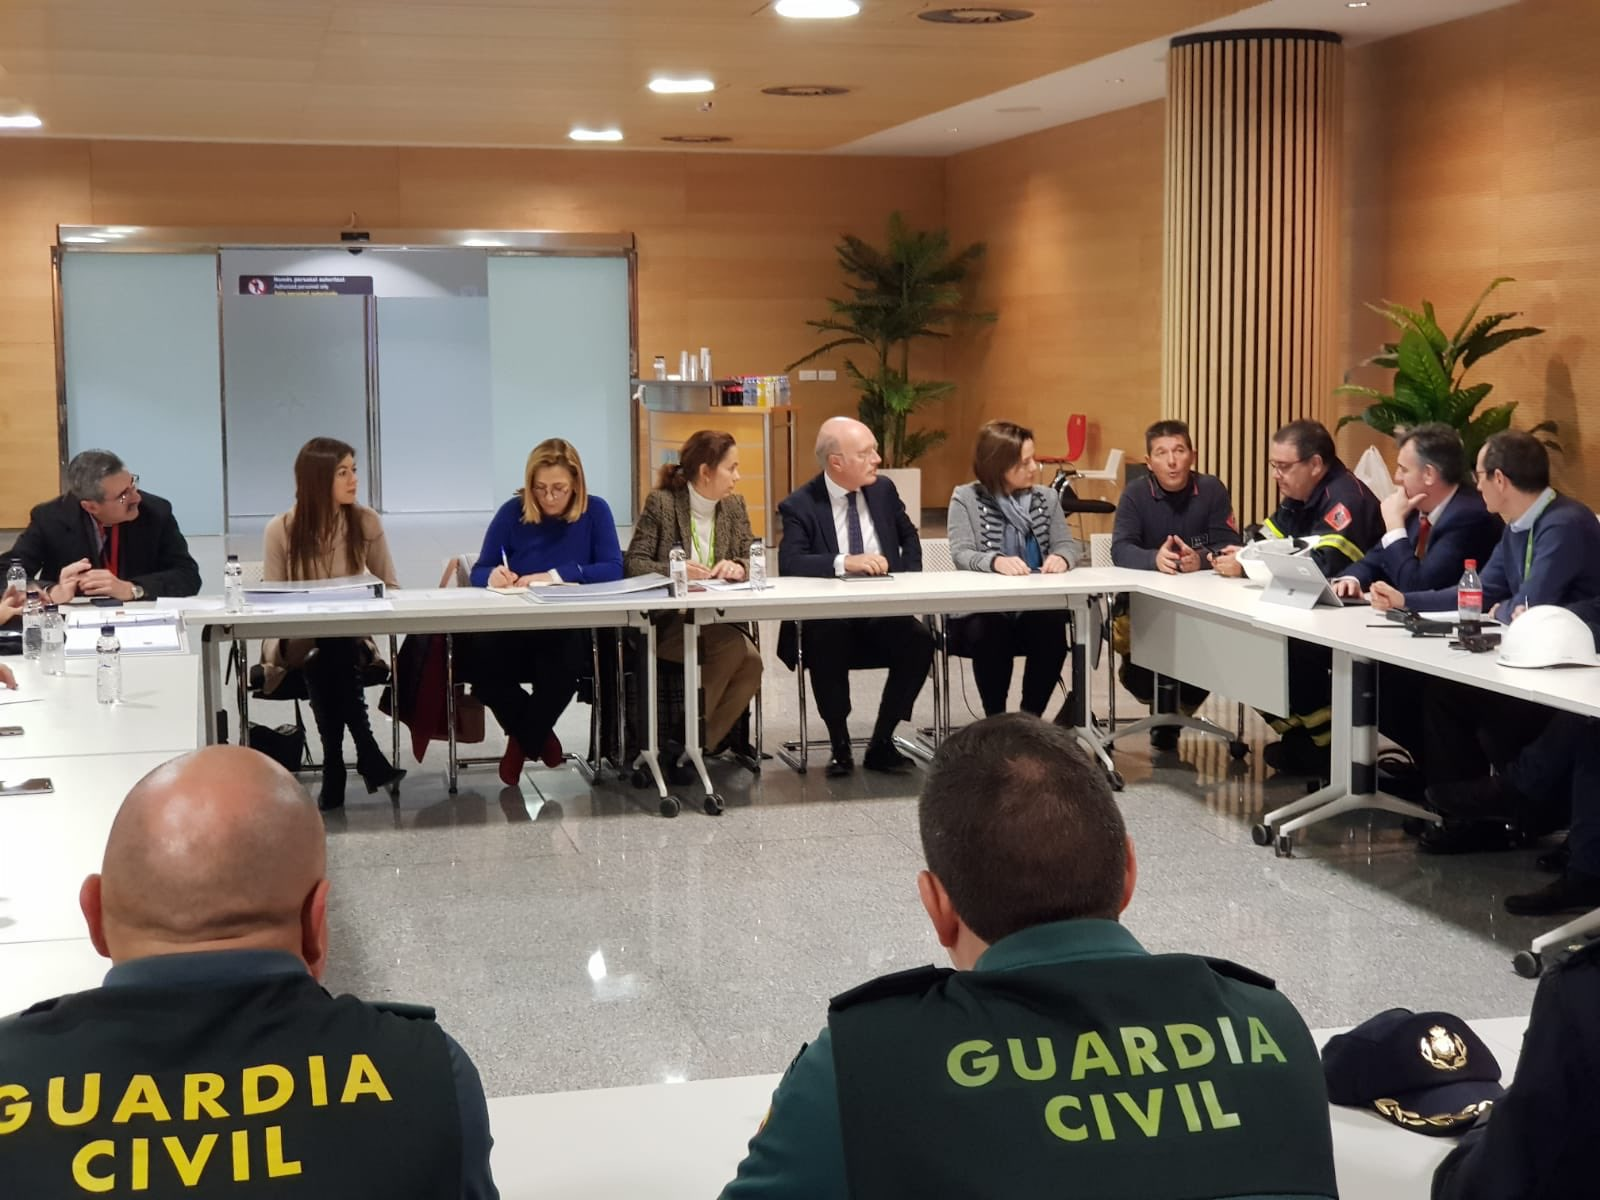 The crisis cabinet formed at Alicante airport